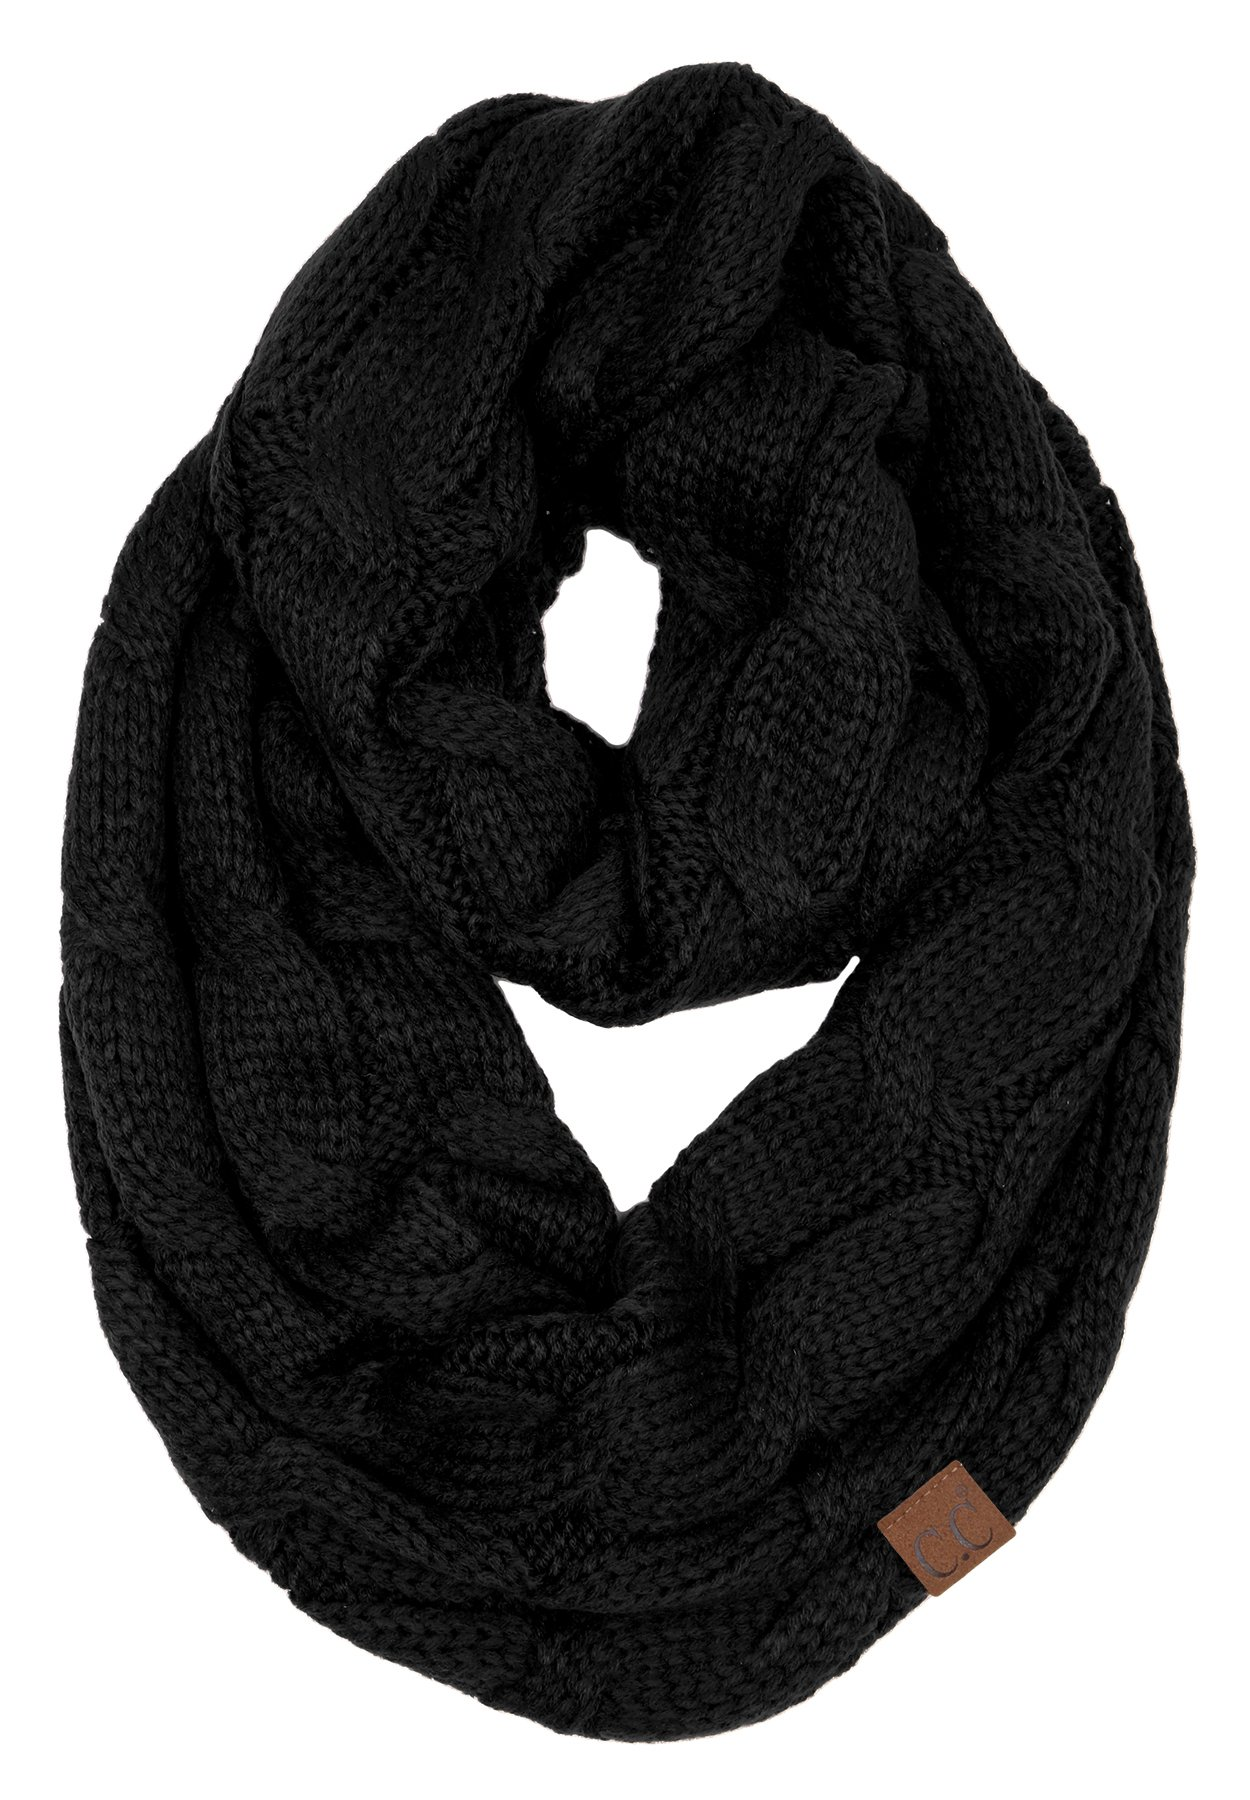 S1-6100-06 Funky Junque Infinity Scarf - Black (Solid) by Funky Junque